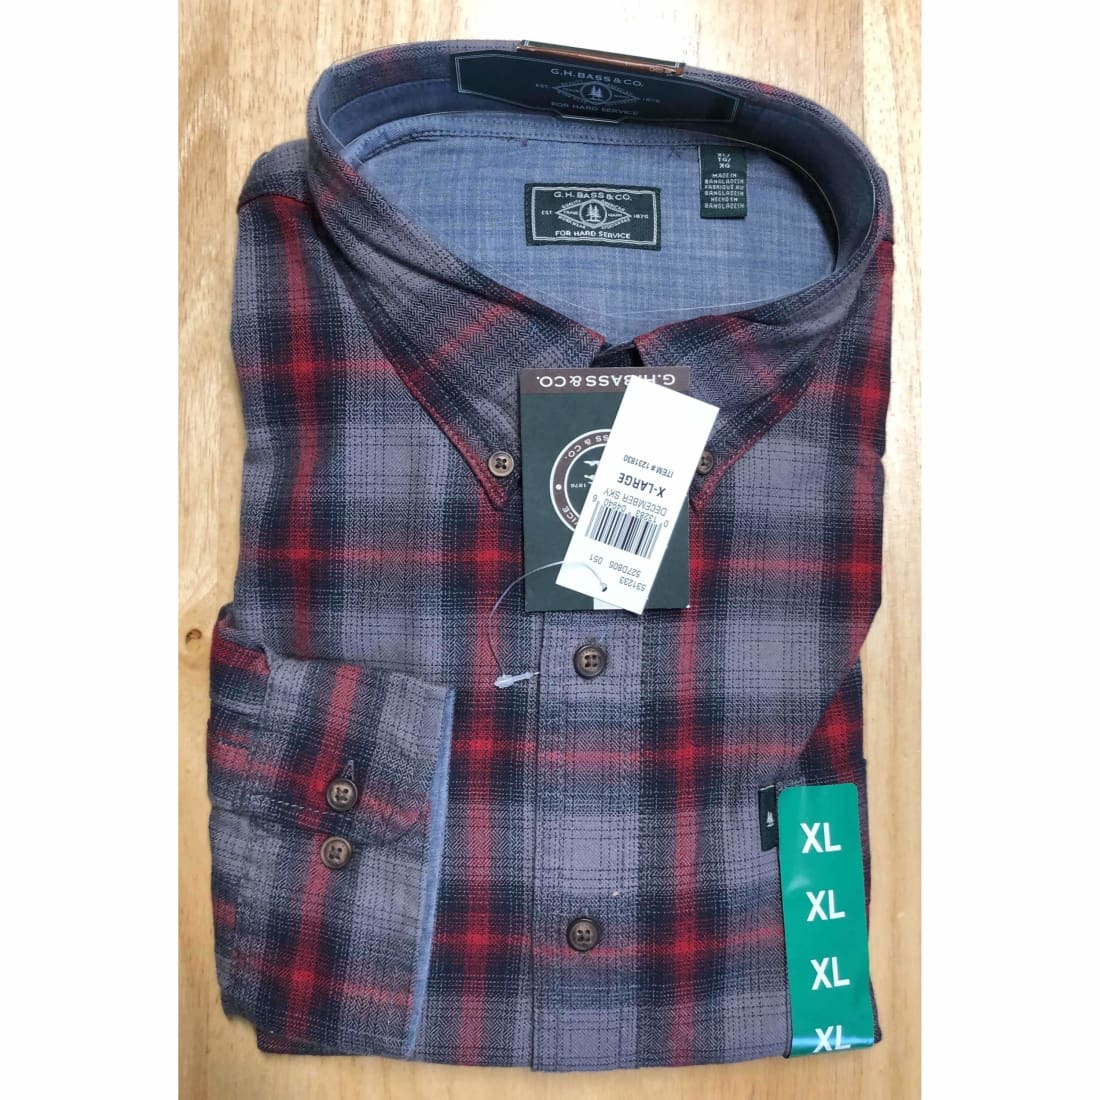 G. H. Bass Mens Fireside Light Weight Flannel Shirt Xl Regular / December Sky Casual Shirts